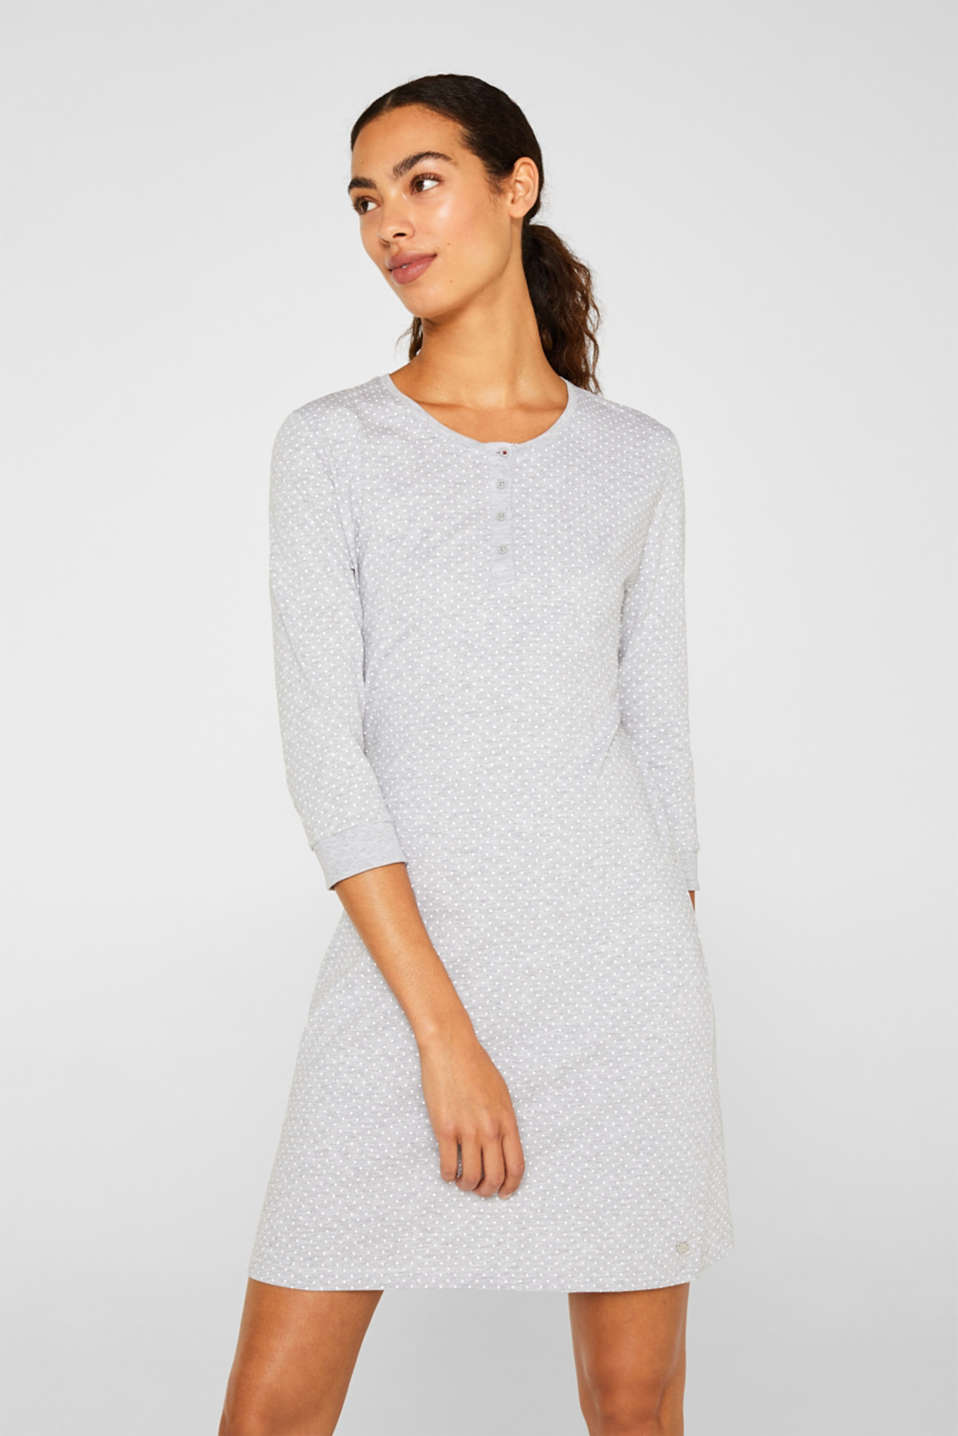 MODERN COTTON nightshirt, LIGHT GREY, detail image number 1